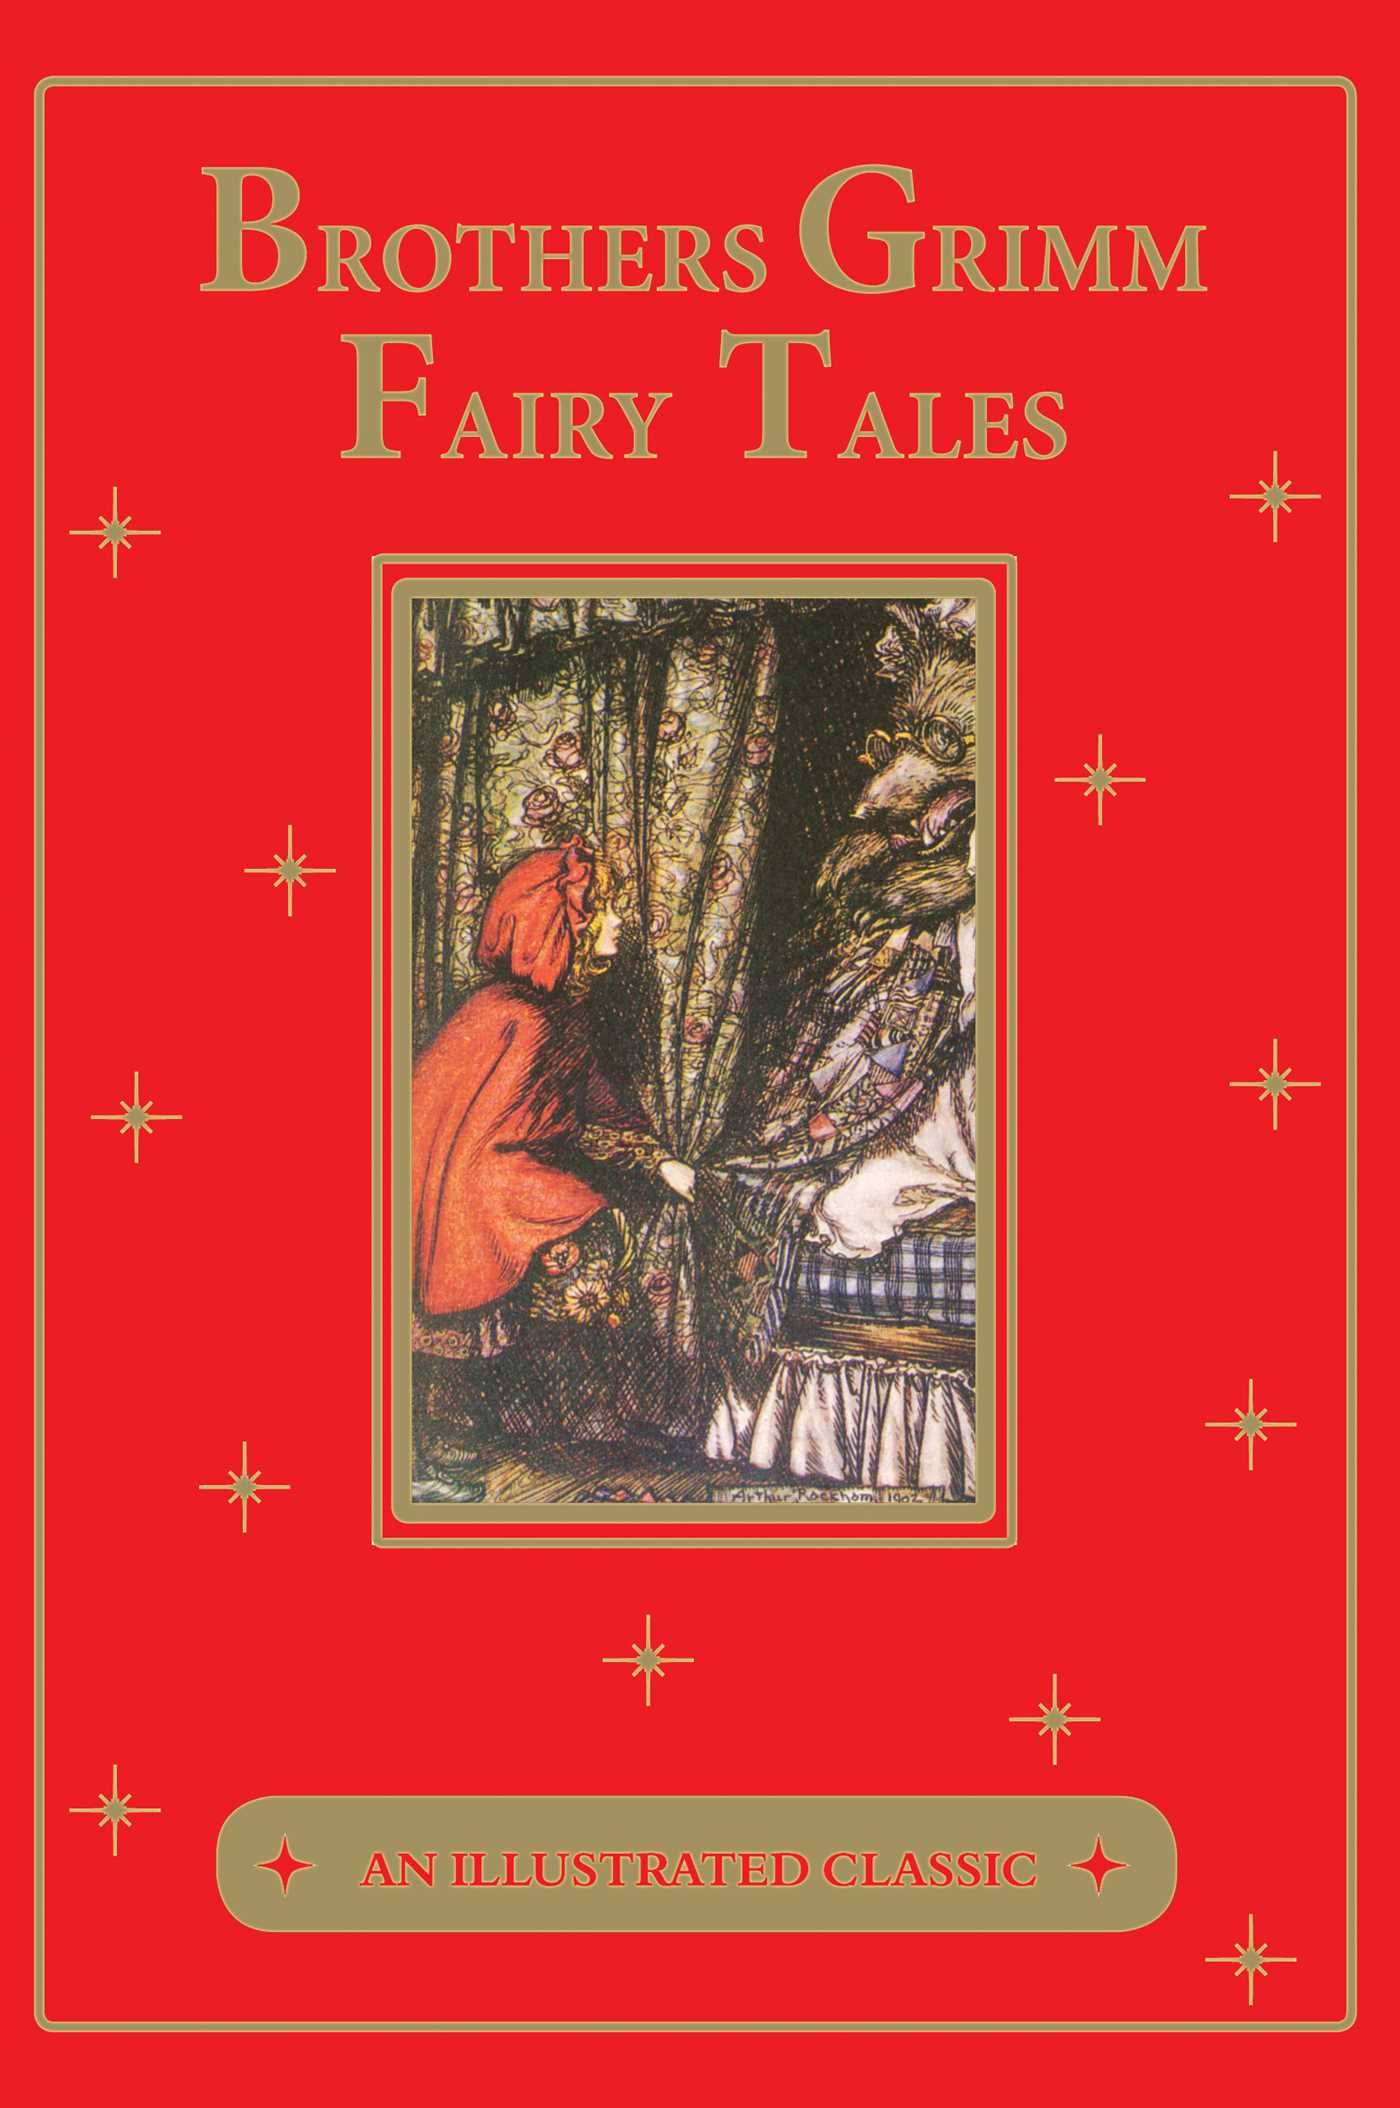 The brothers grimm fairy tales 9781684124046 hr